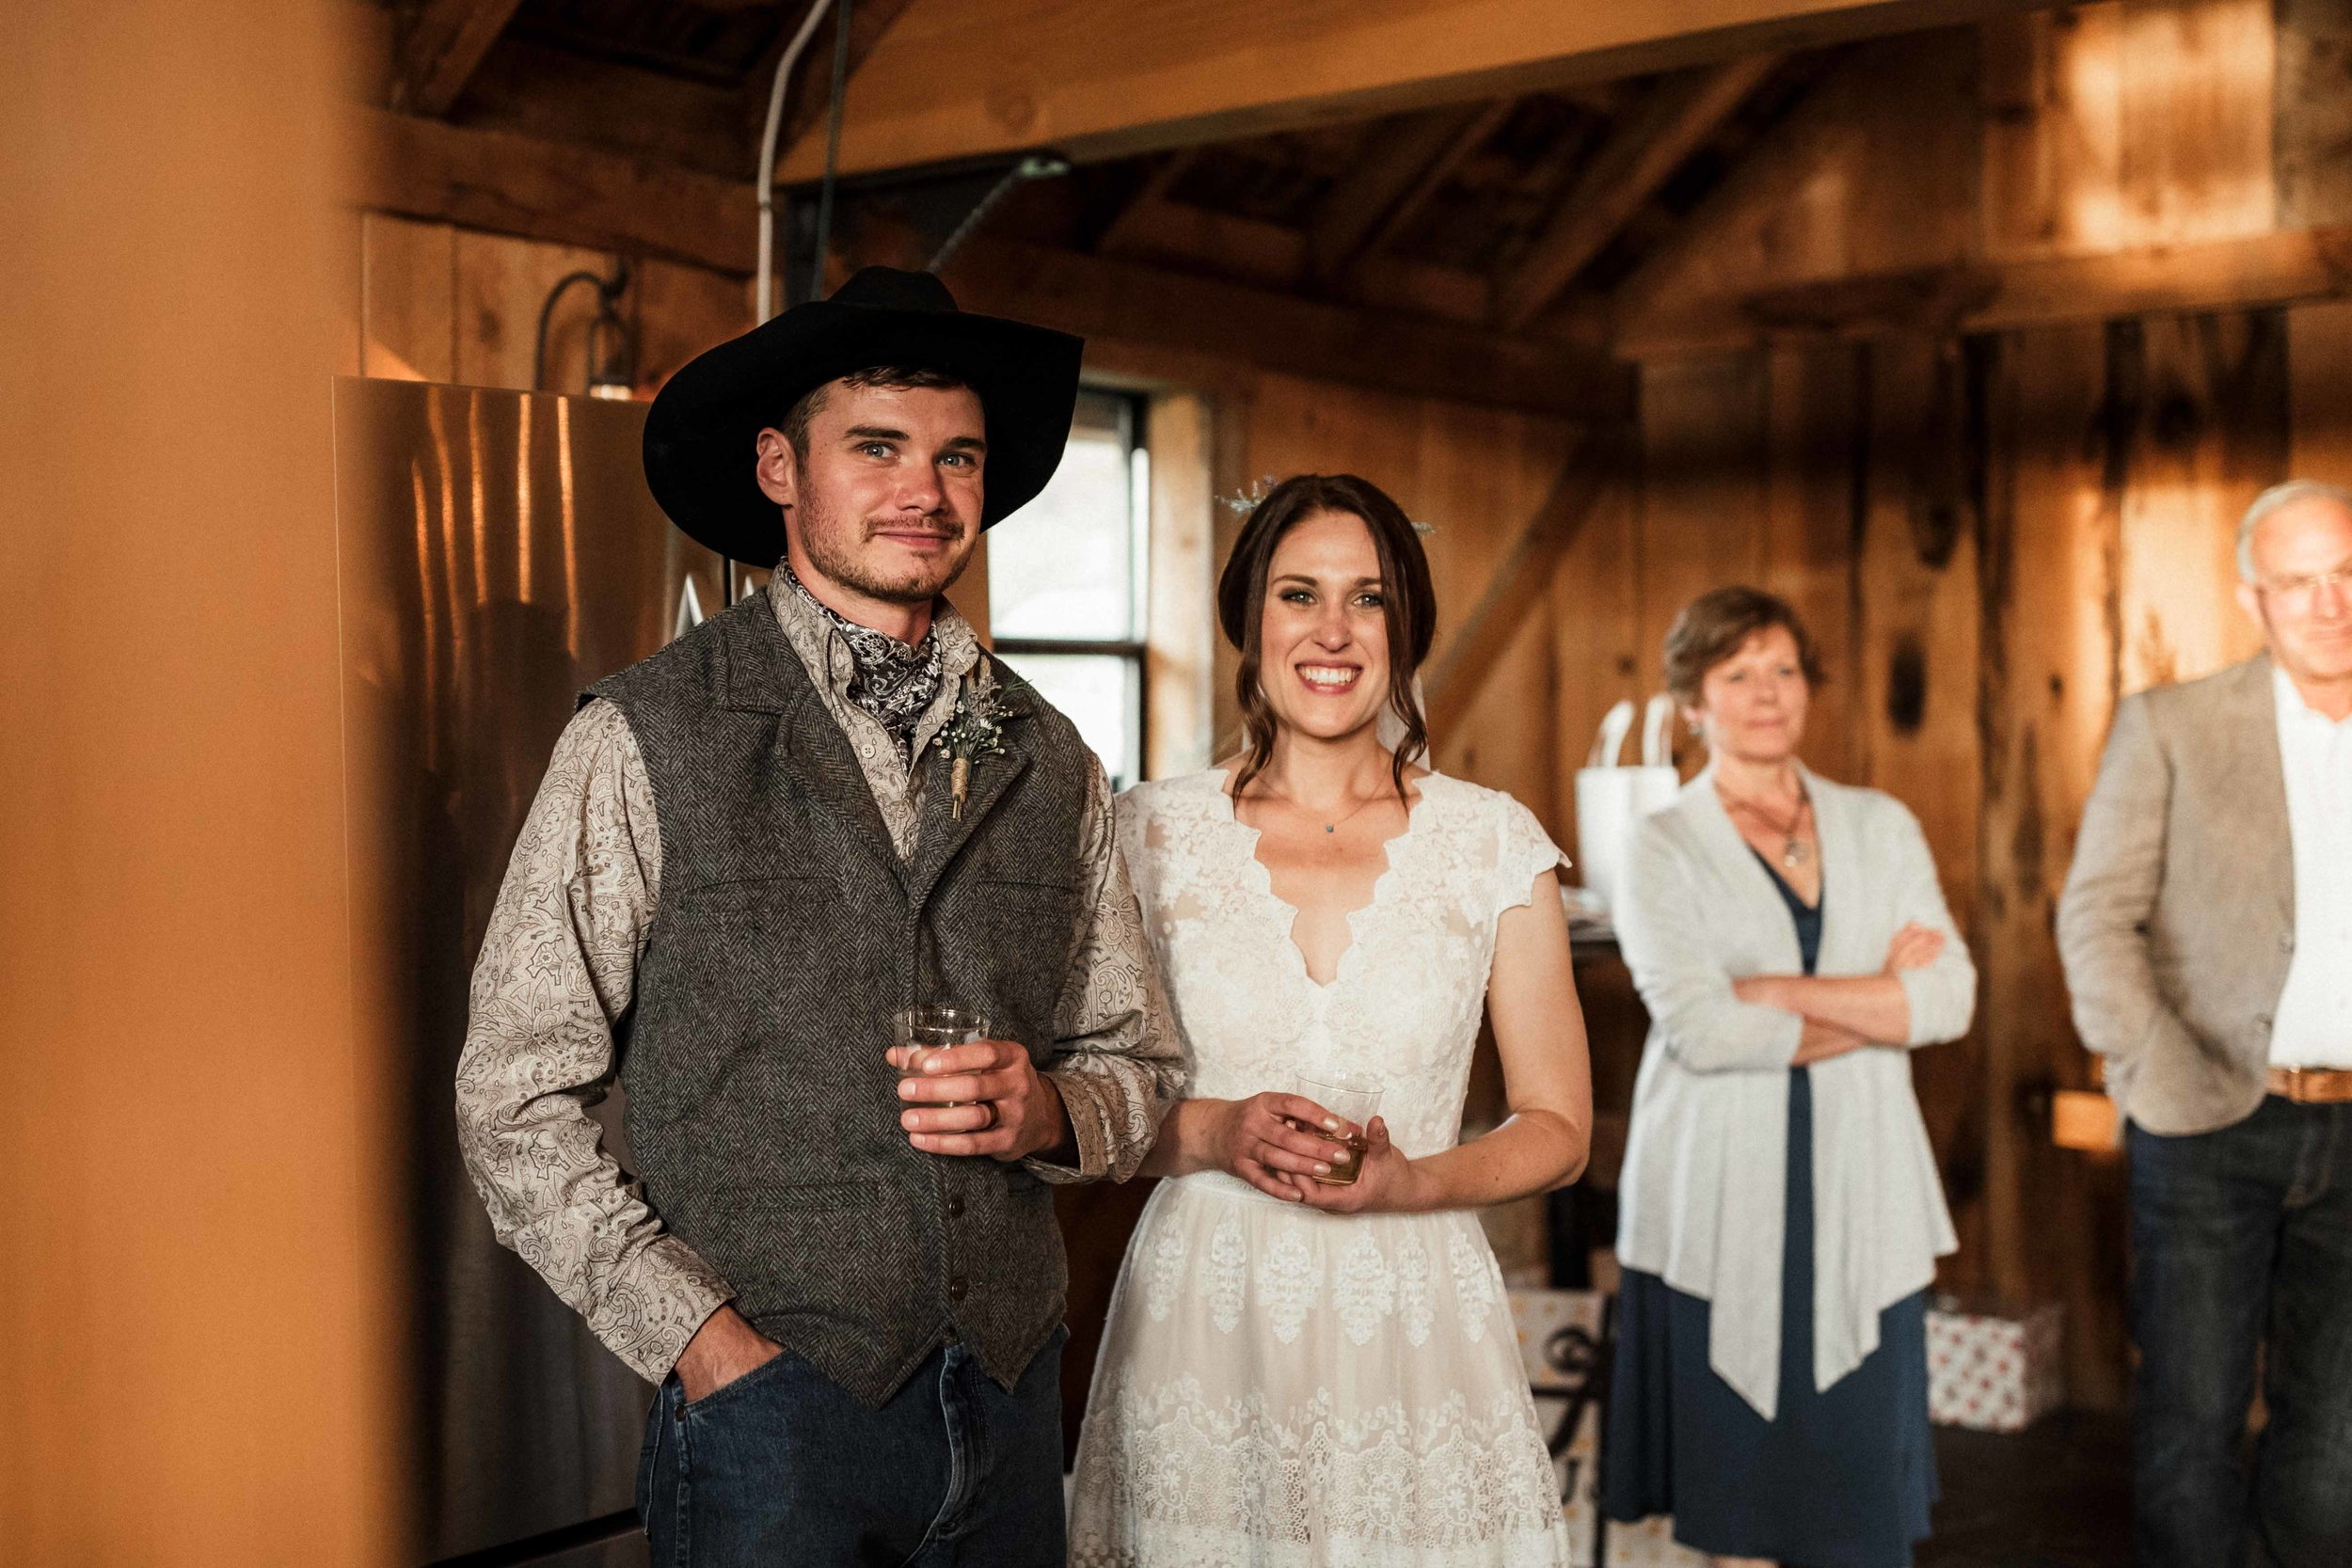 the-cattle-barn-wedding-77.jpg